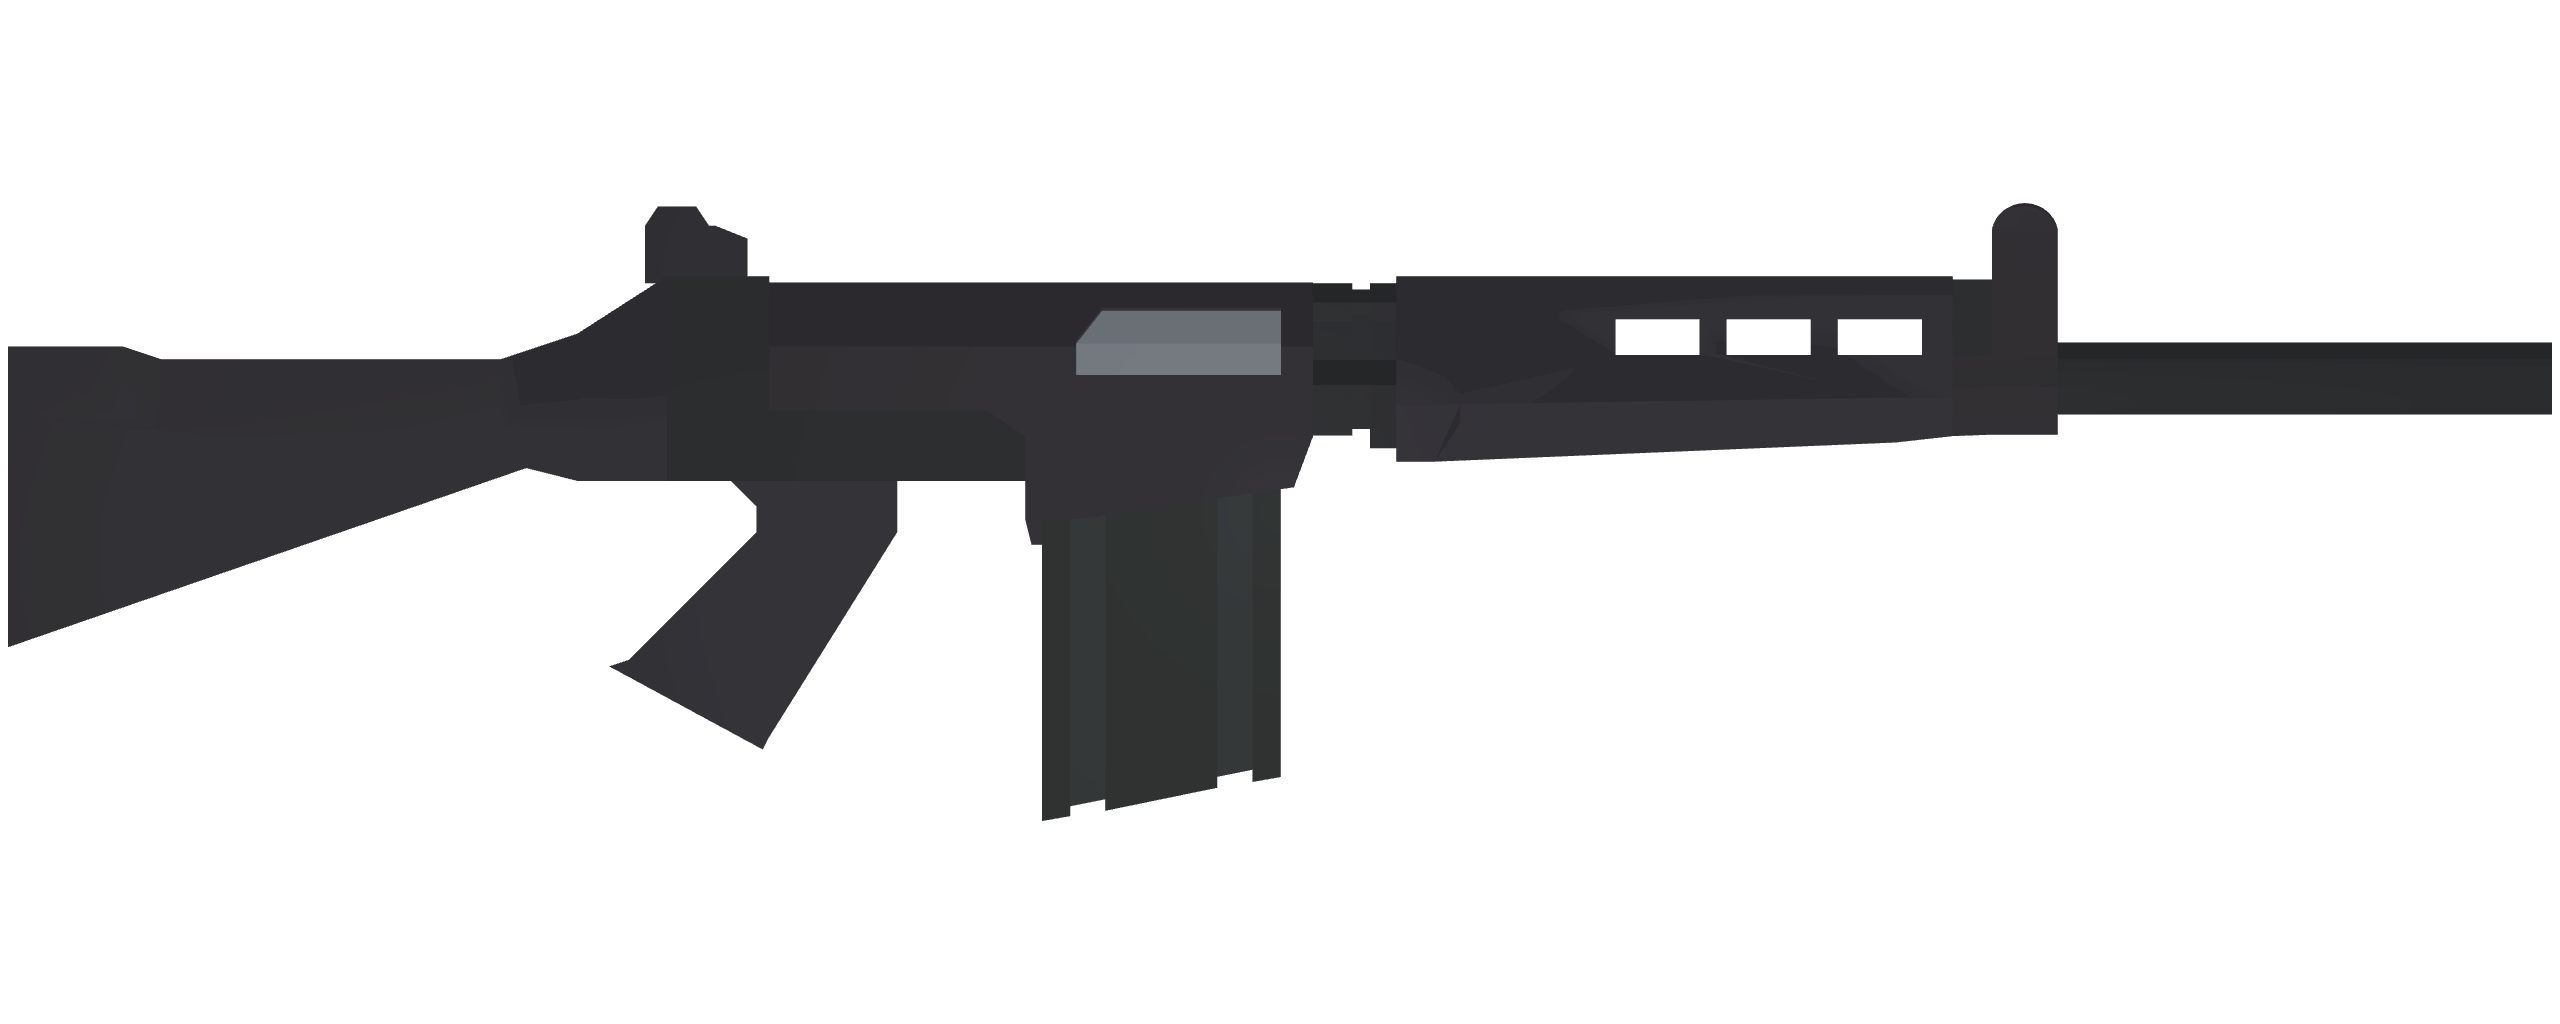 Unturned - All Weapons ID's for Uncreated Warfare Mods - Neutral Weapons - 82888E6